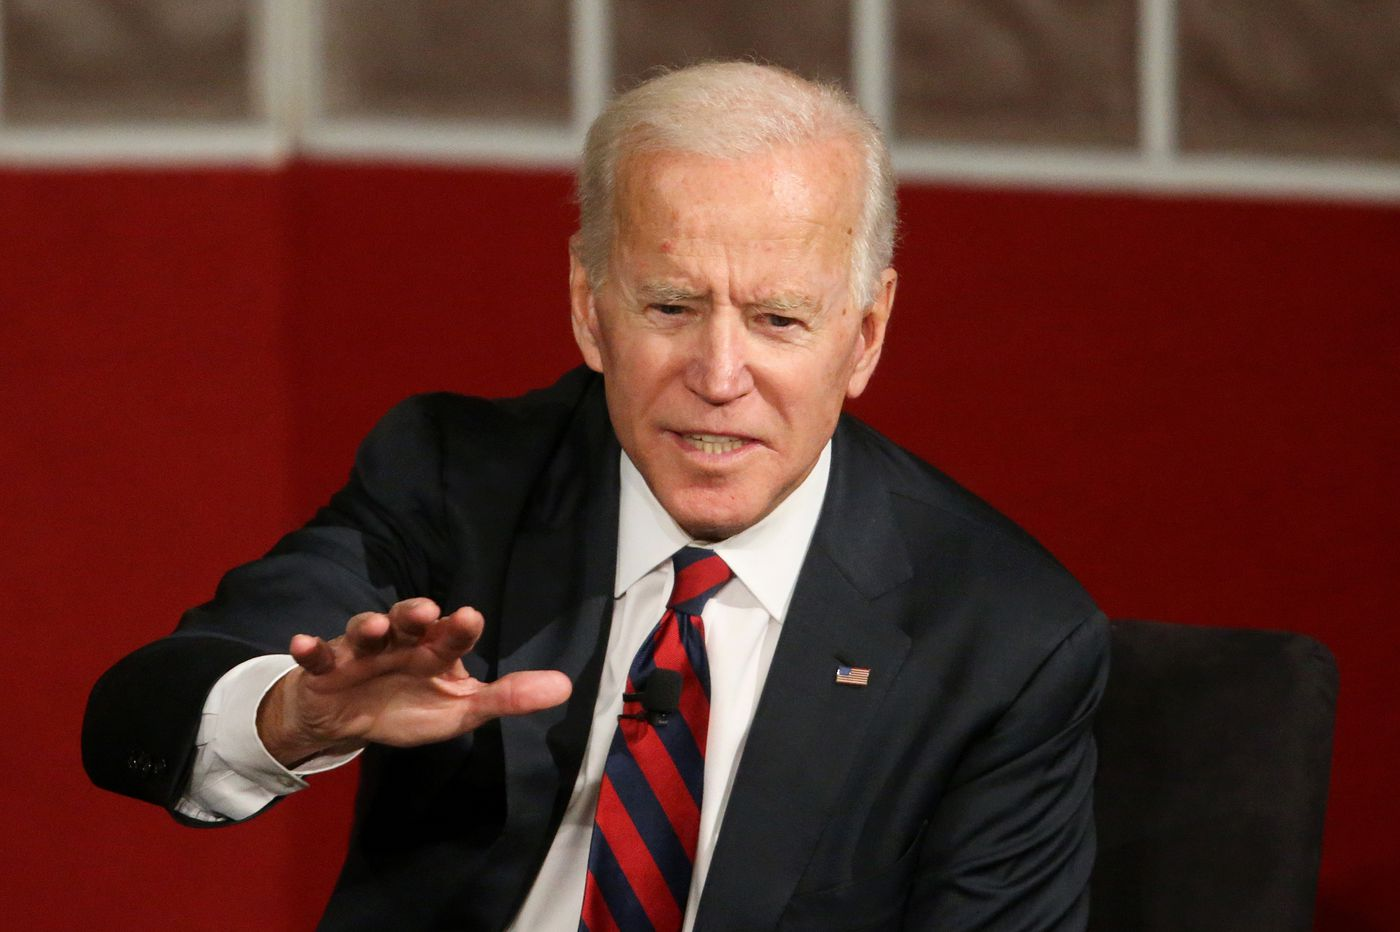 Arizona GOP congressman says Biden poses biggest threat to Trump in 2020